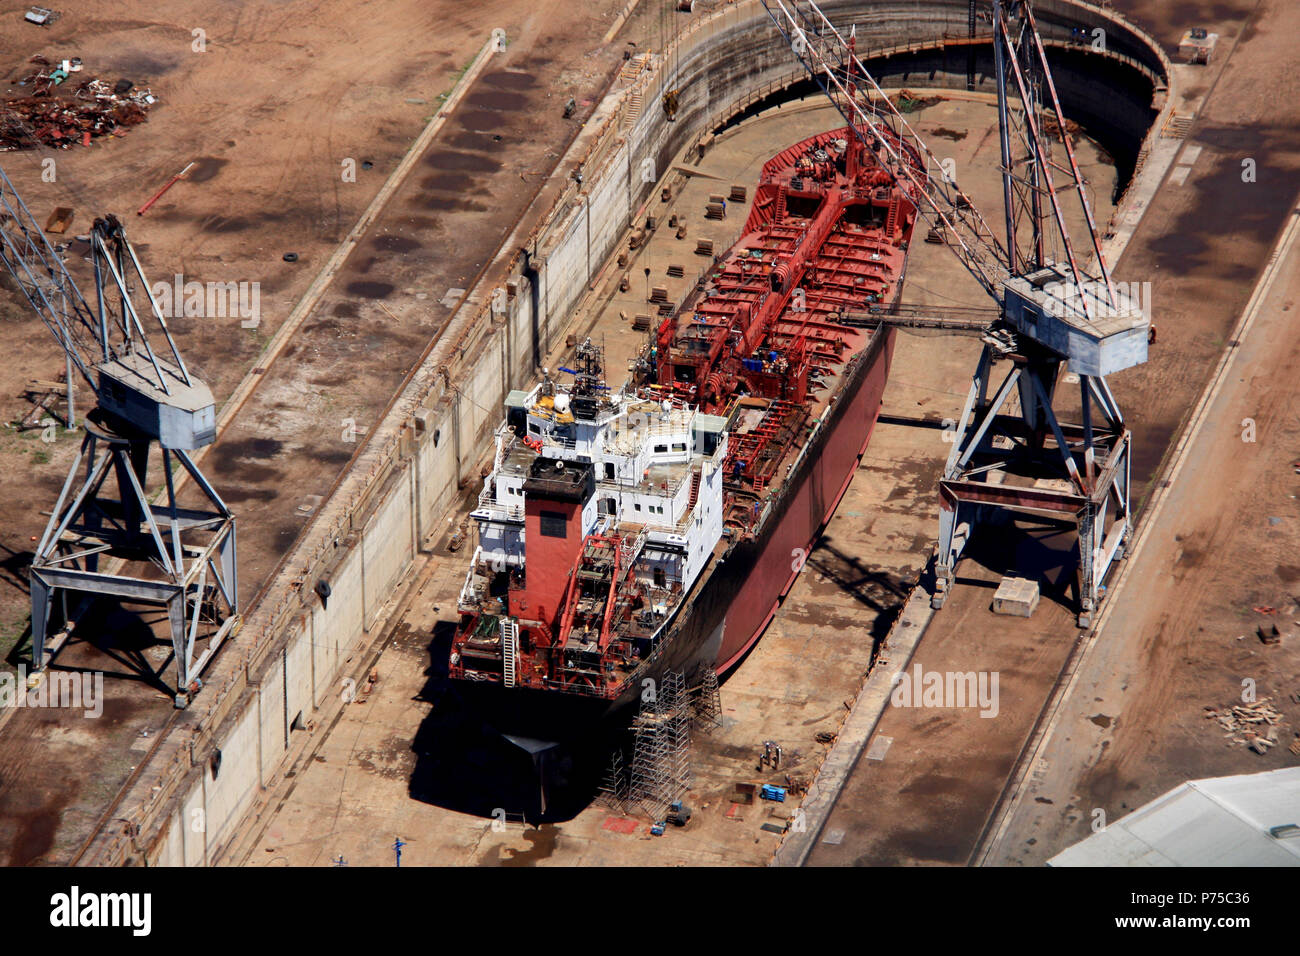 Aerial View of a Ship in a Dry Dock in Ghana - Stock Image